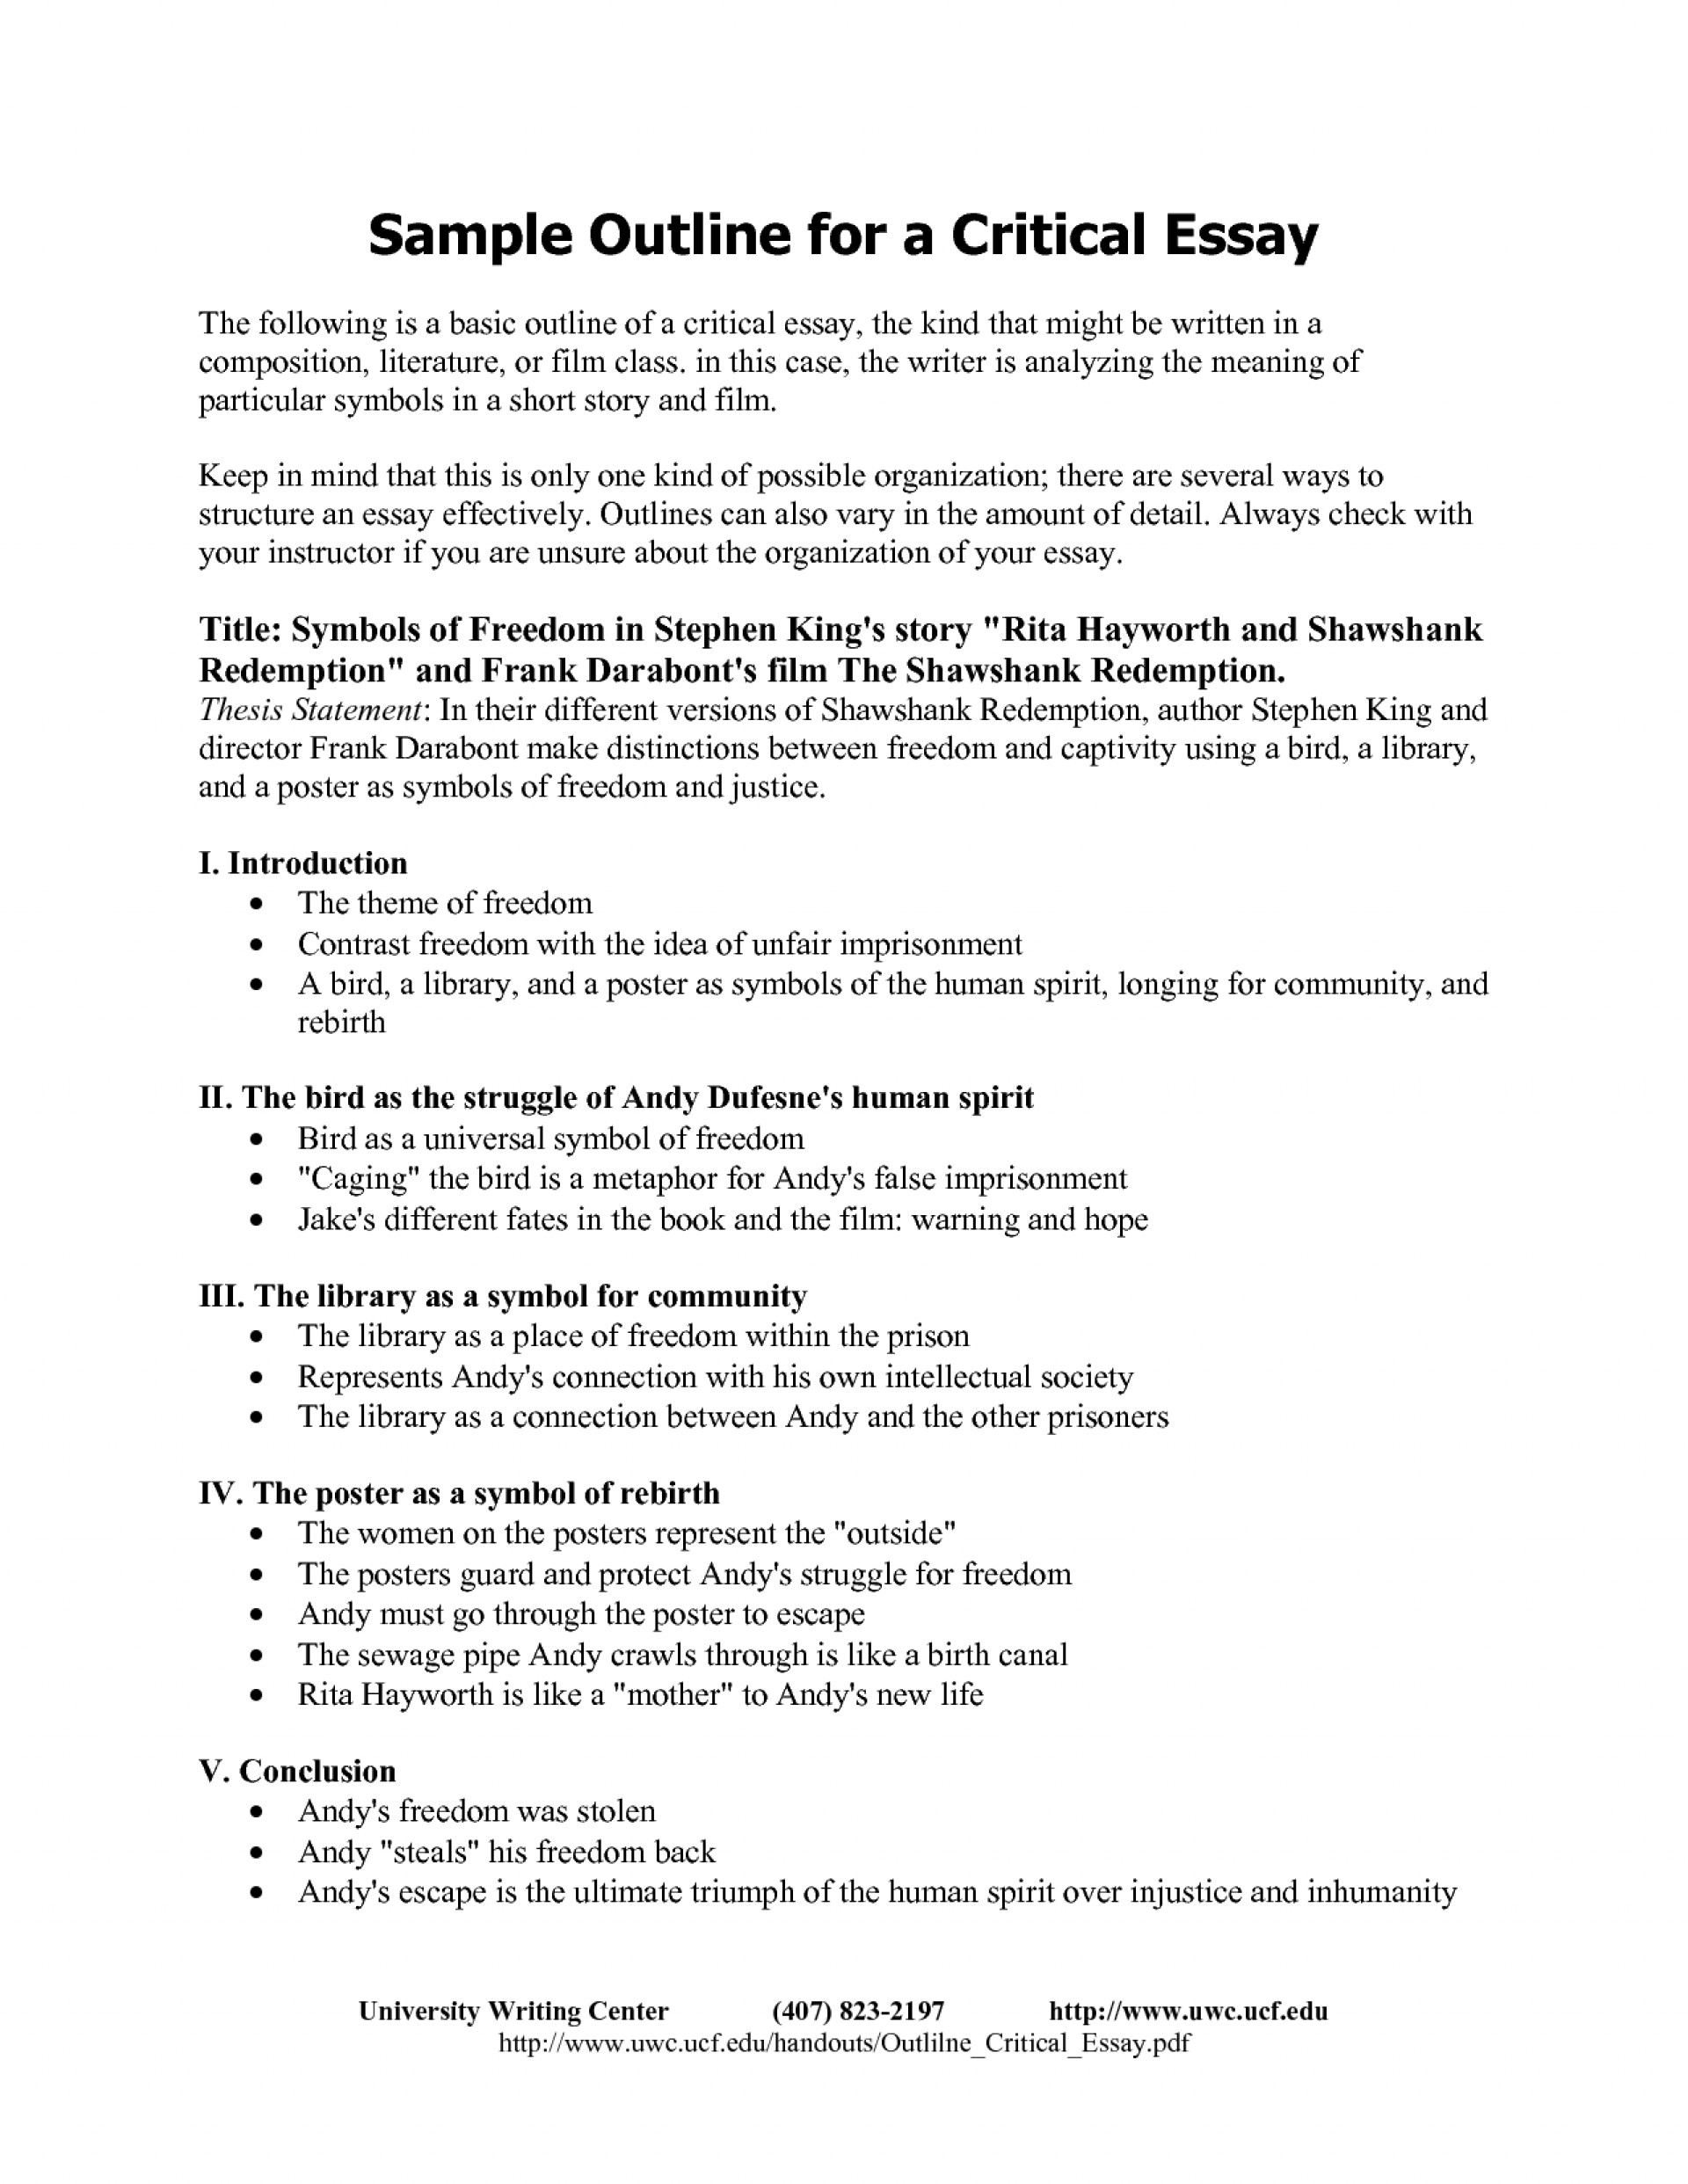 001 Critical Essay Outline Format 130831 Example How To Begin Amazing A Review Structure Response 1920